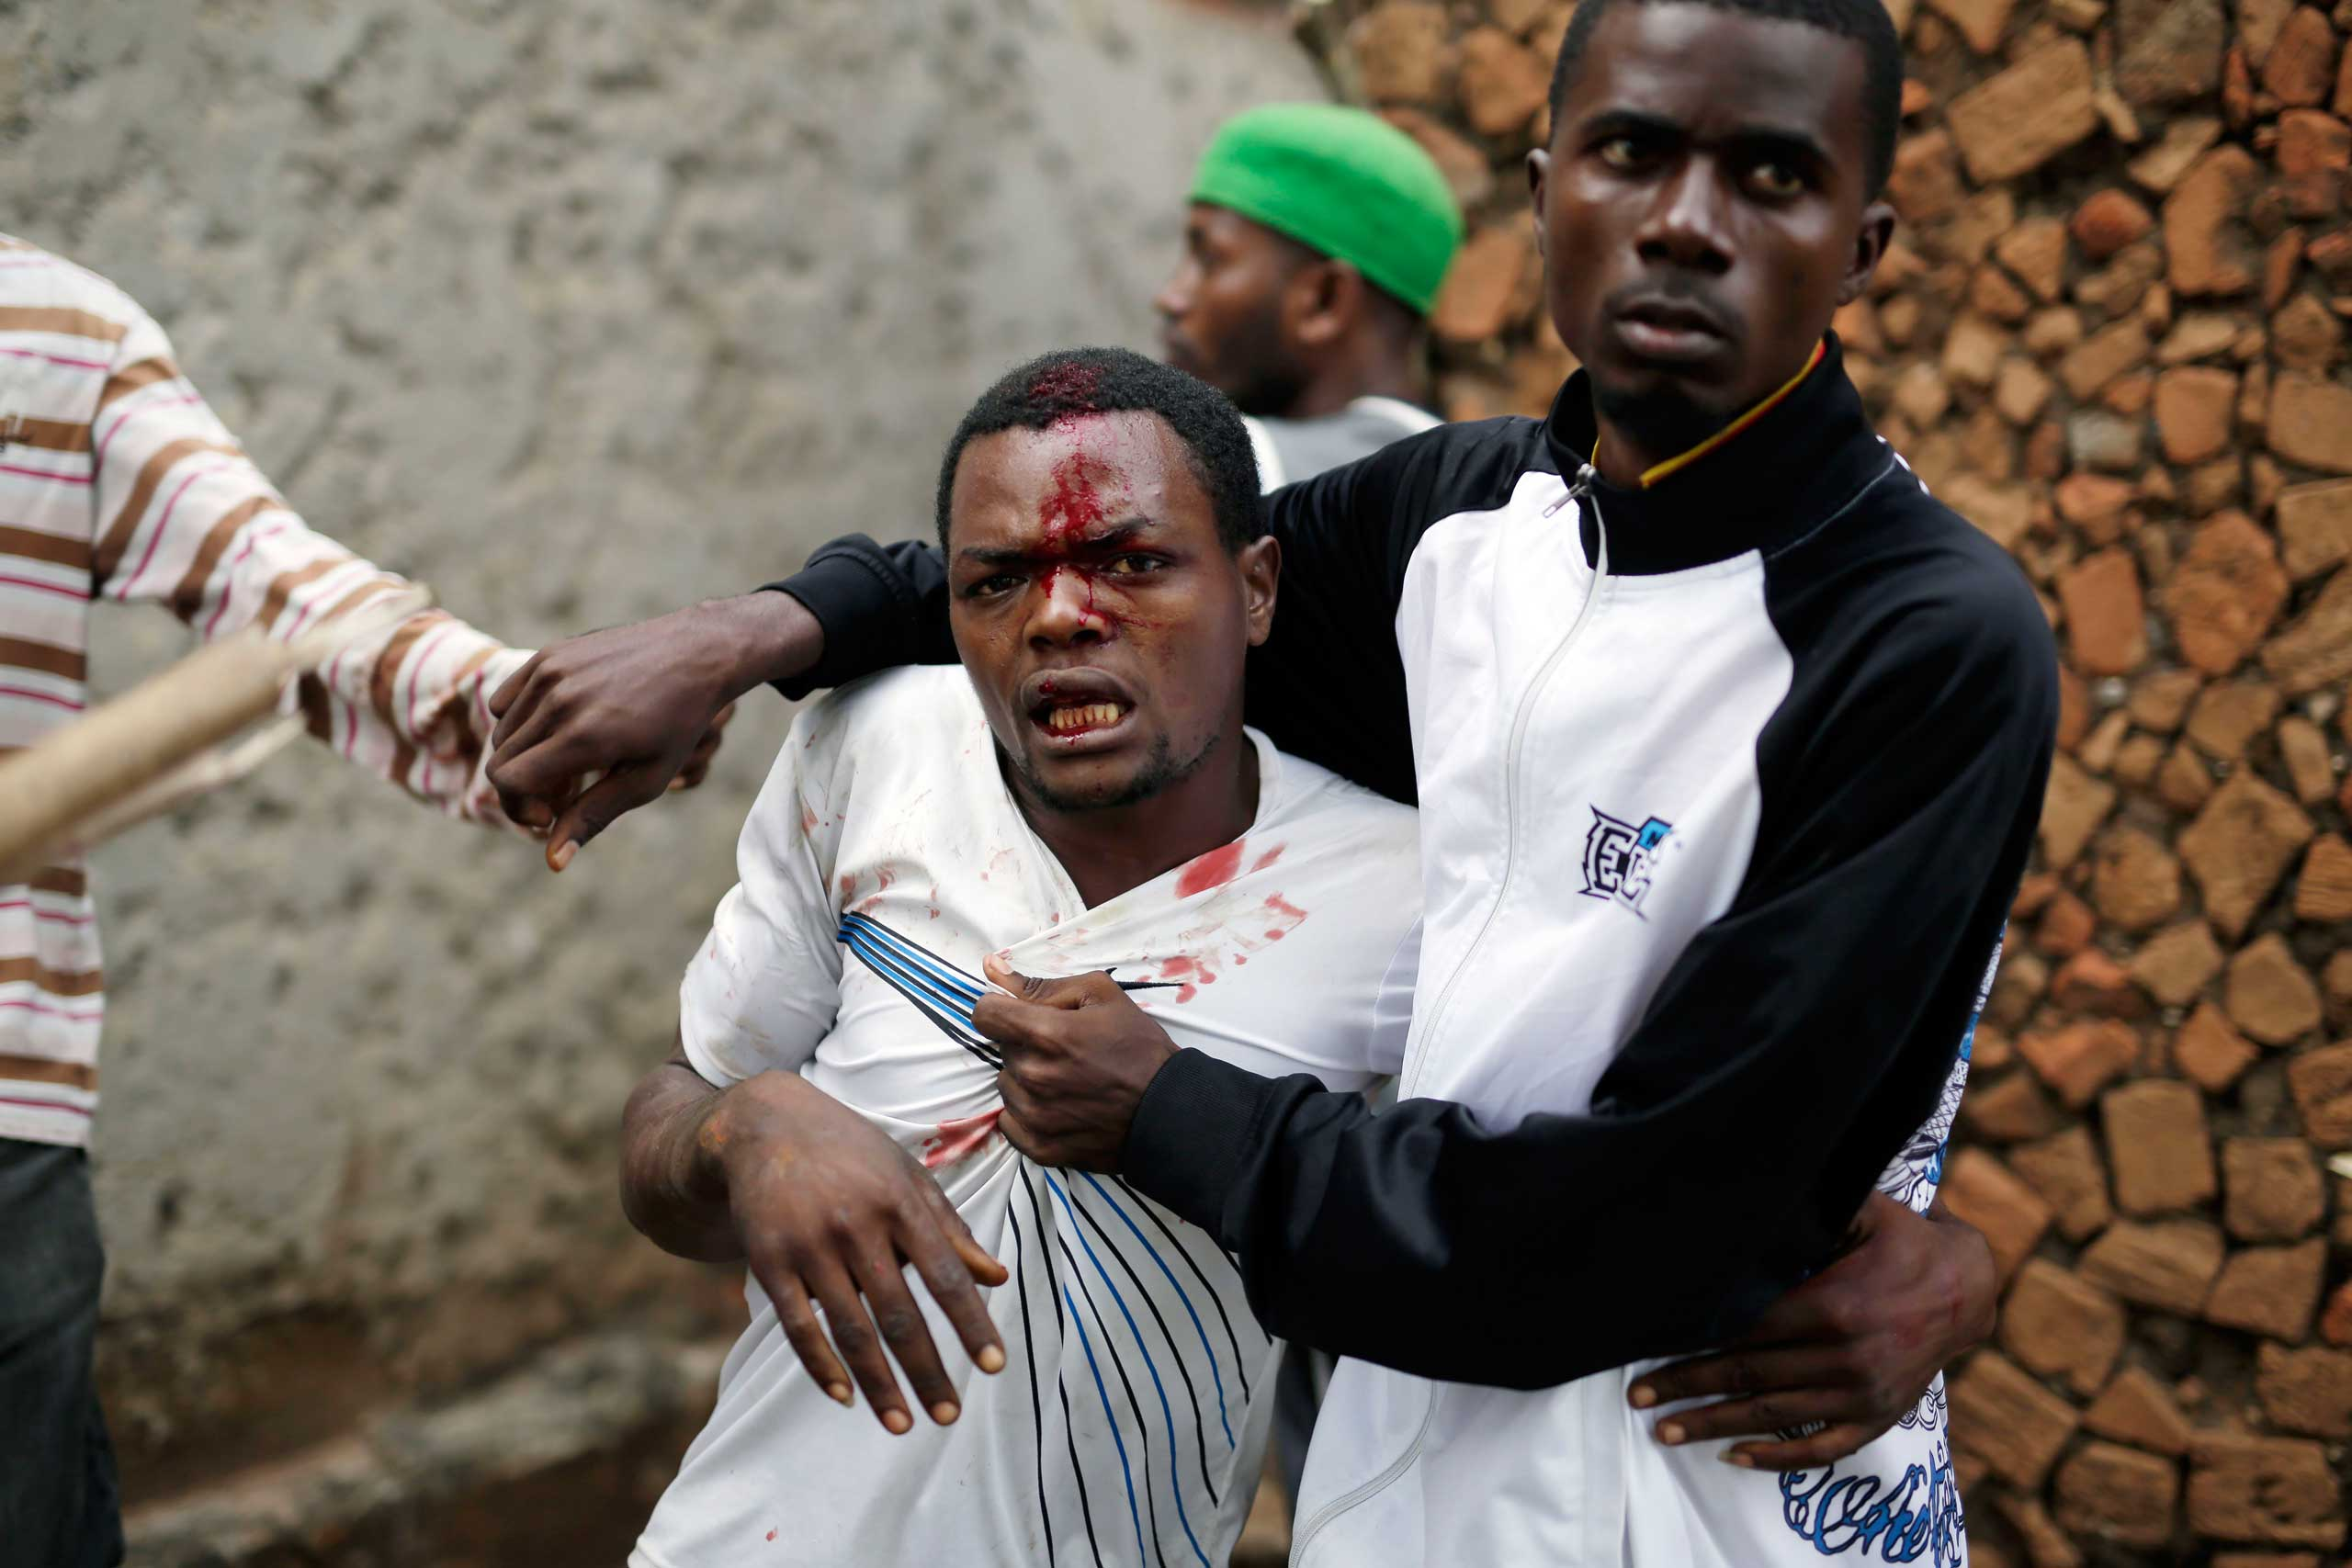 Jean Claude Niyonzima, a suspected member of the ruling party's Imbonerakure youth militia, is restrained as a mob gathers around his house, as protests continue against  President Pierre Nkurunziza's decision to seek a third term in office in the Cibitoke district of Bujumbura, Burundi on May 7, 2015.